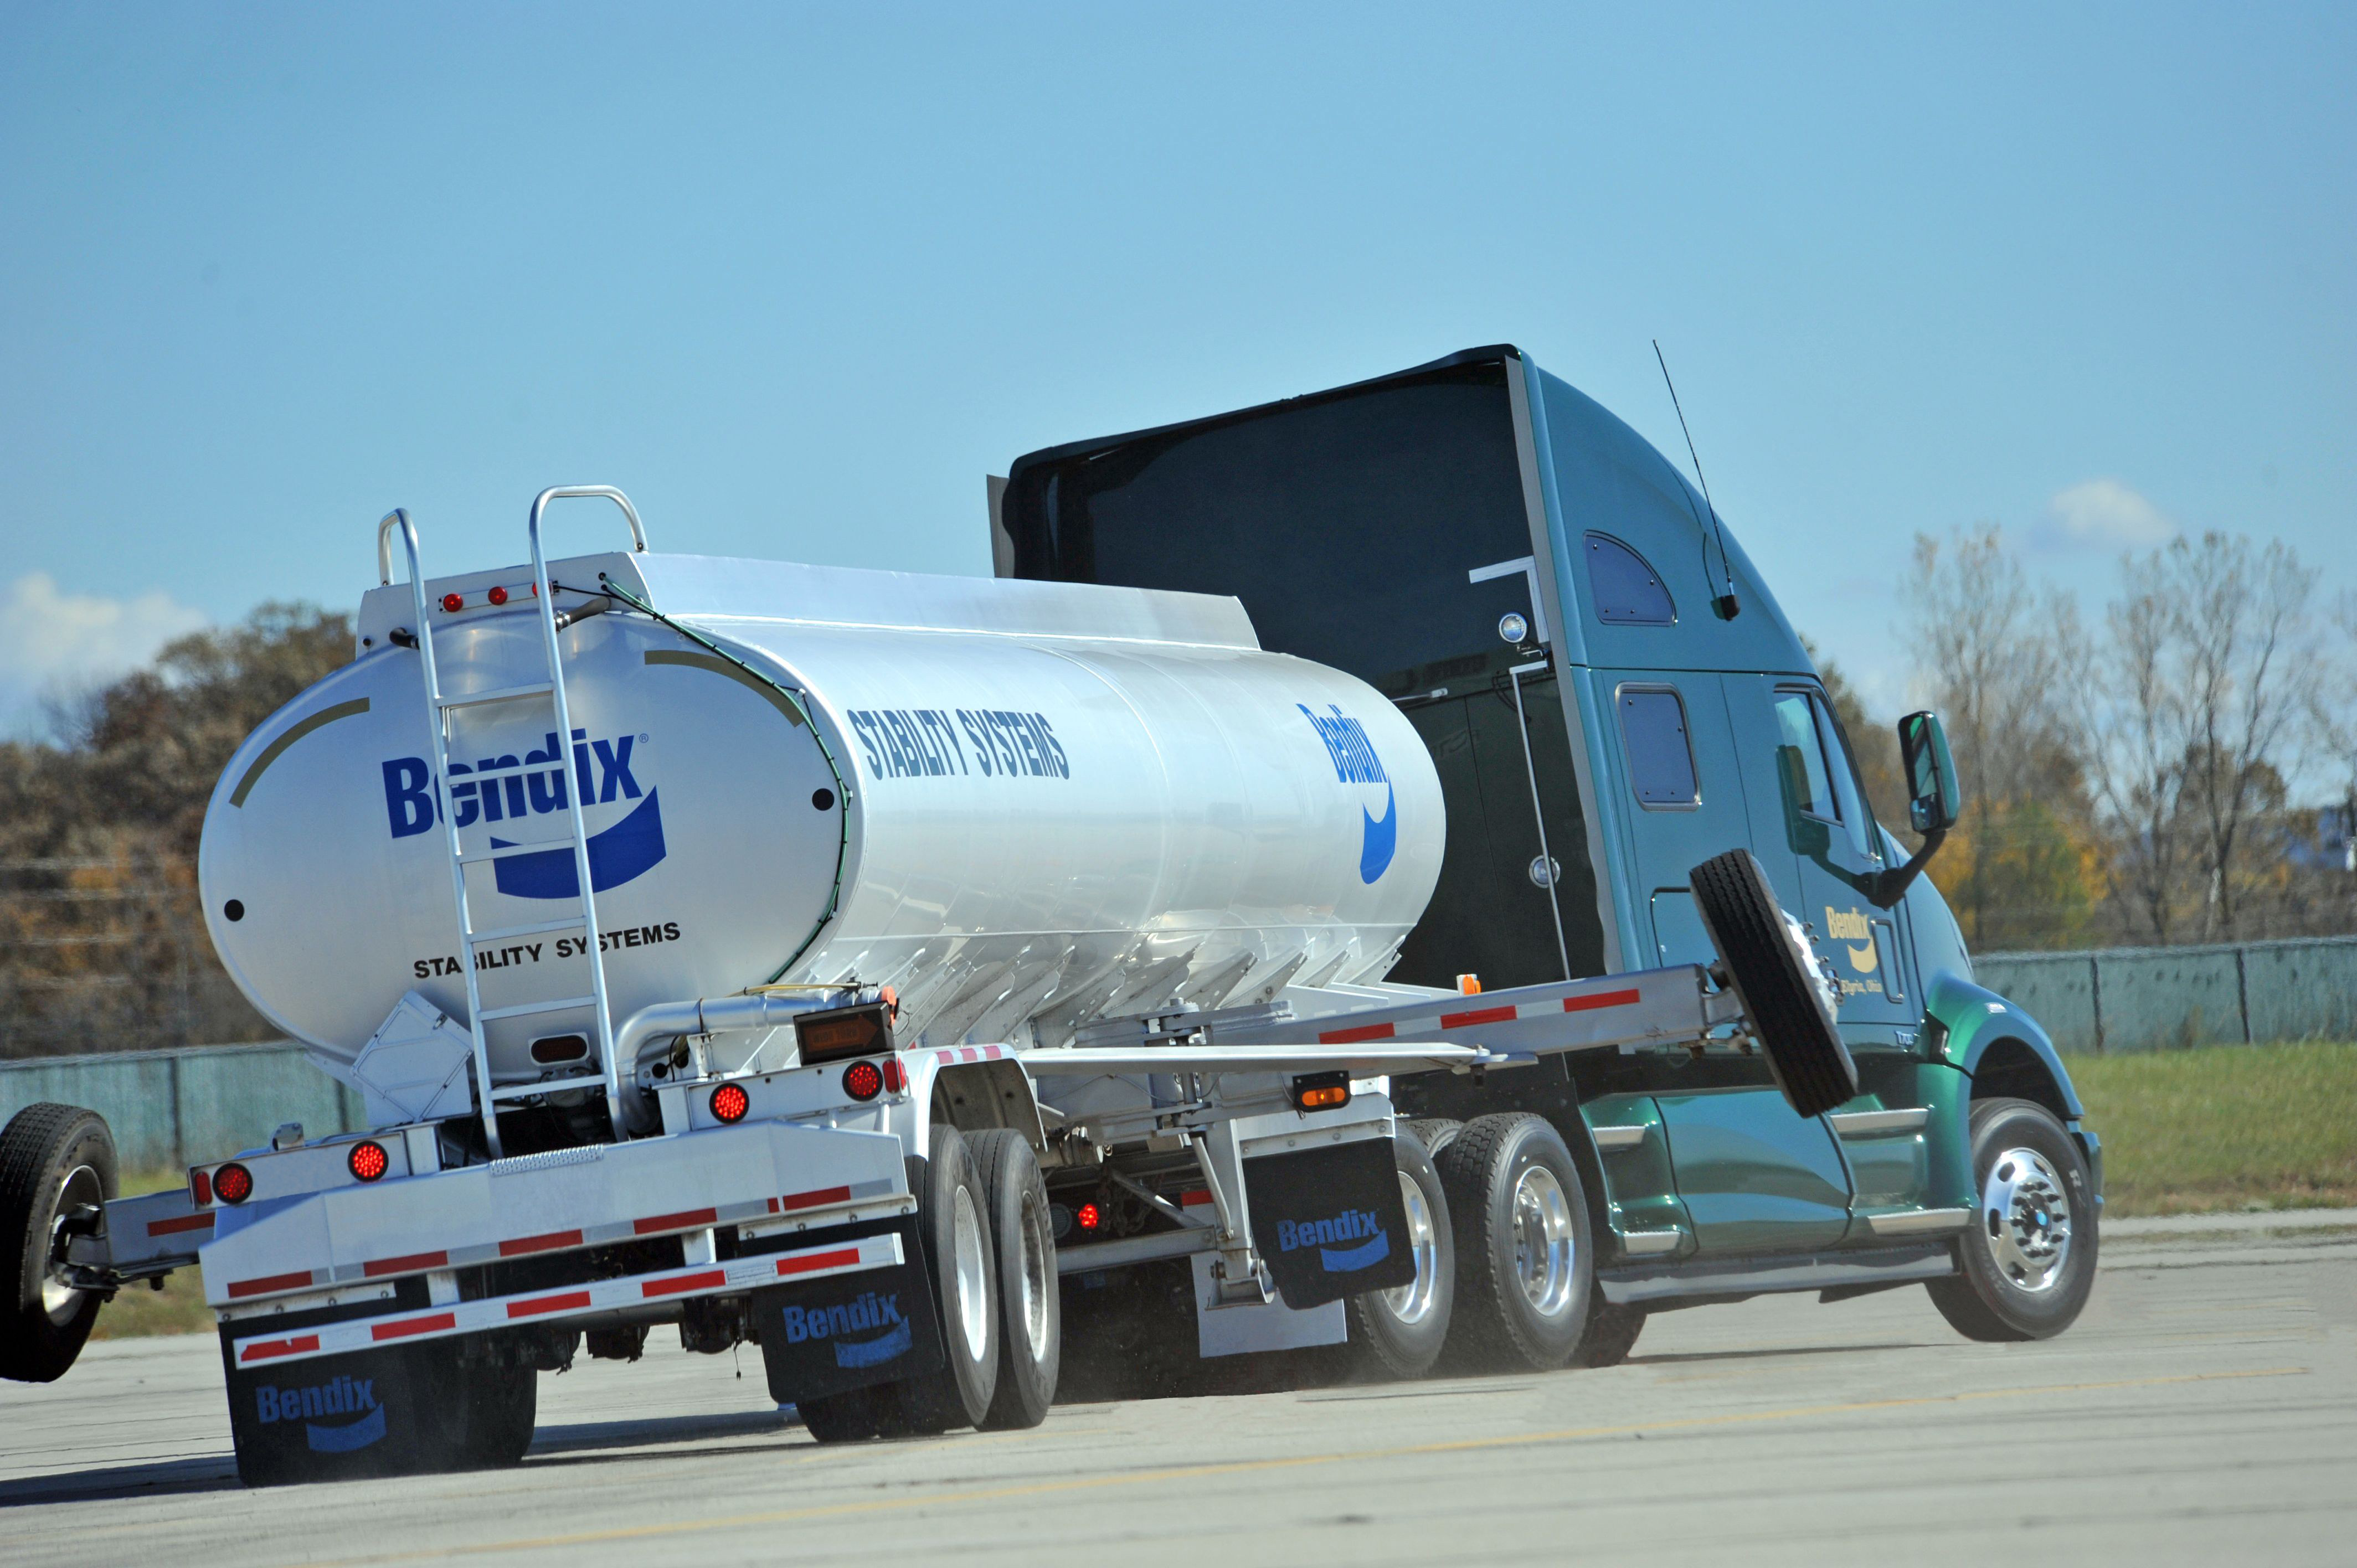 Bendix 300 000 trucks using its stability control system on road today